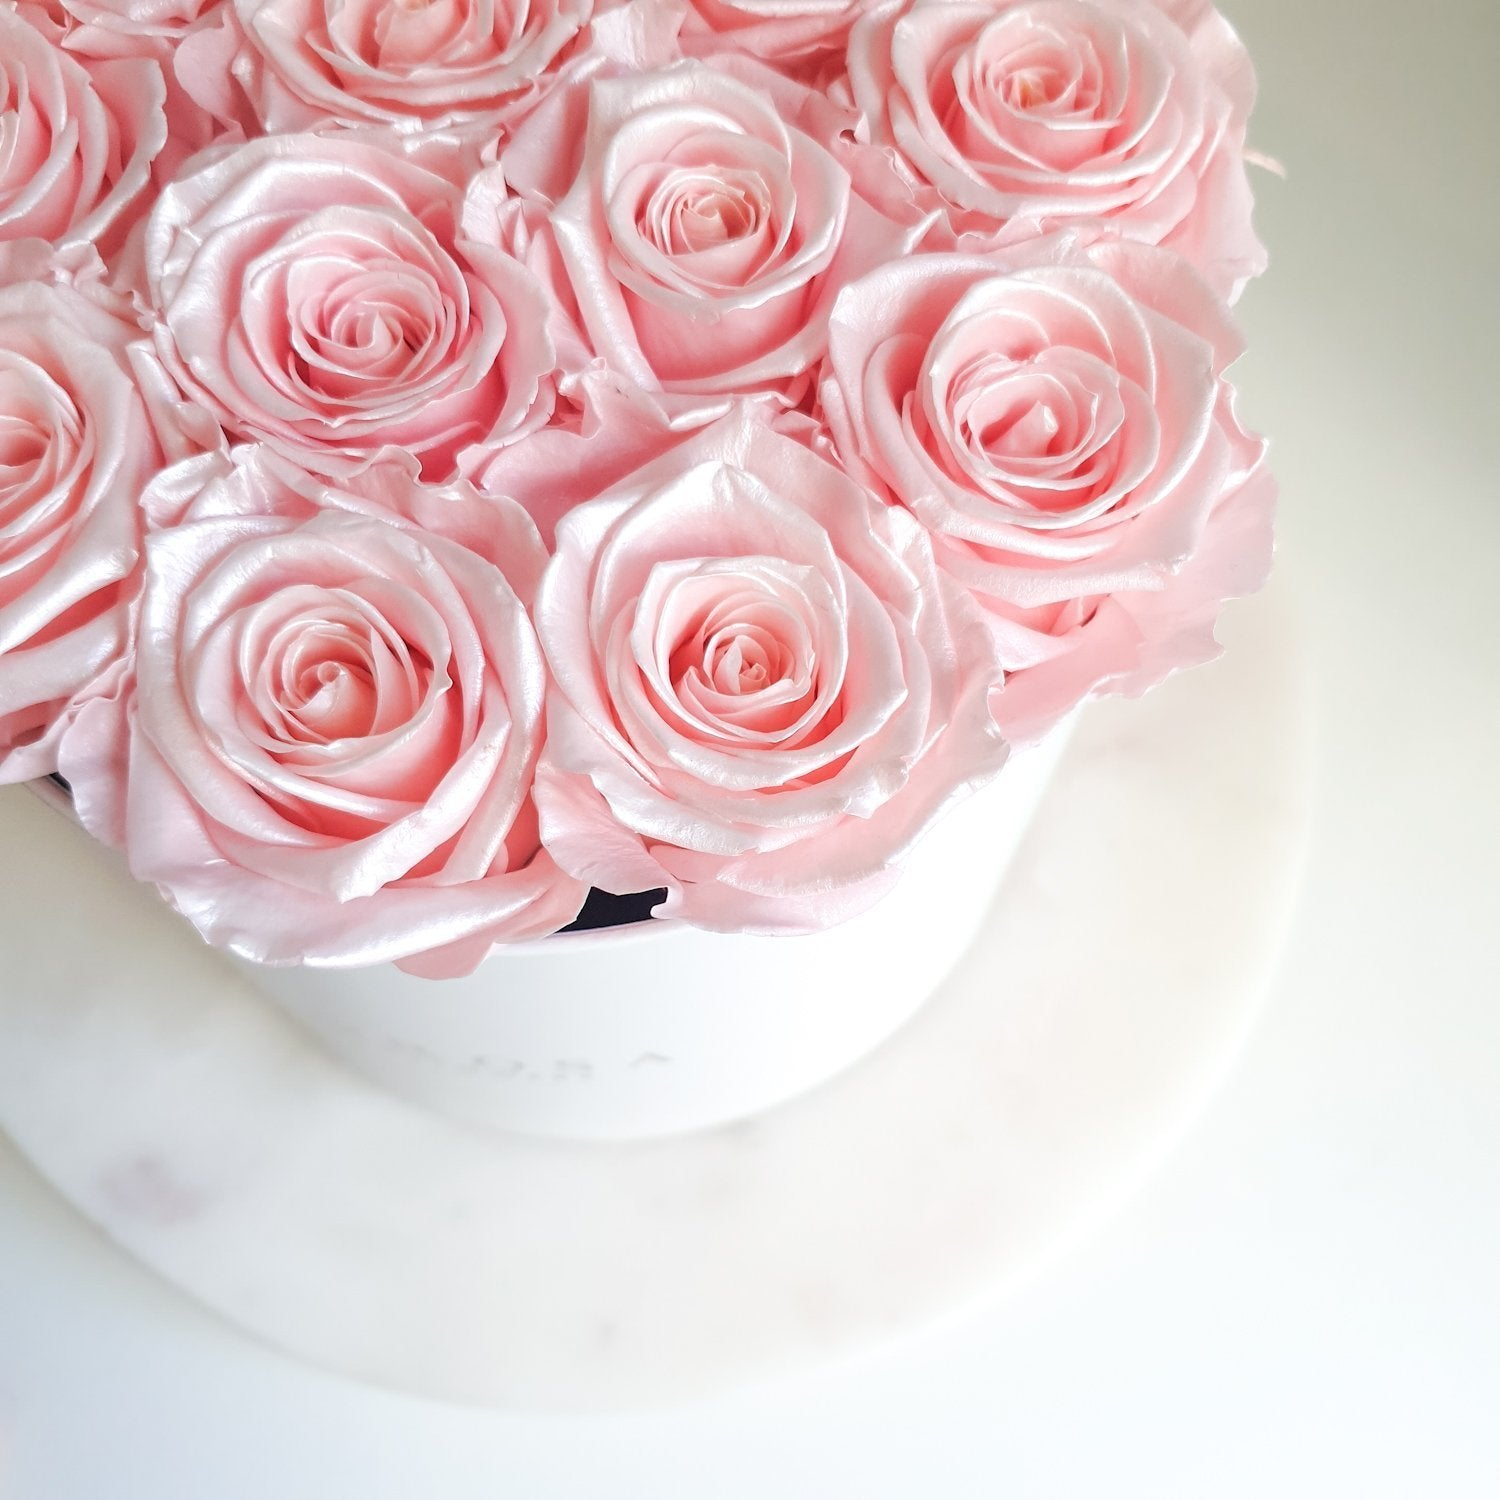 long lasting roses, metallic roses, pink roses, rose box delivery sydney, luxury rose box